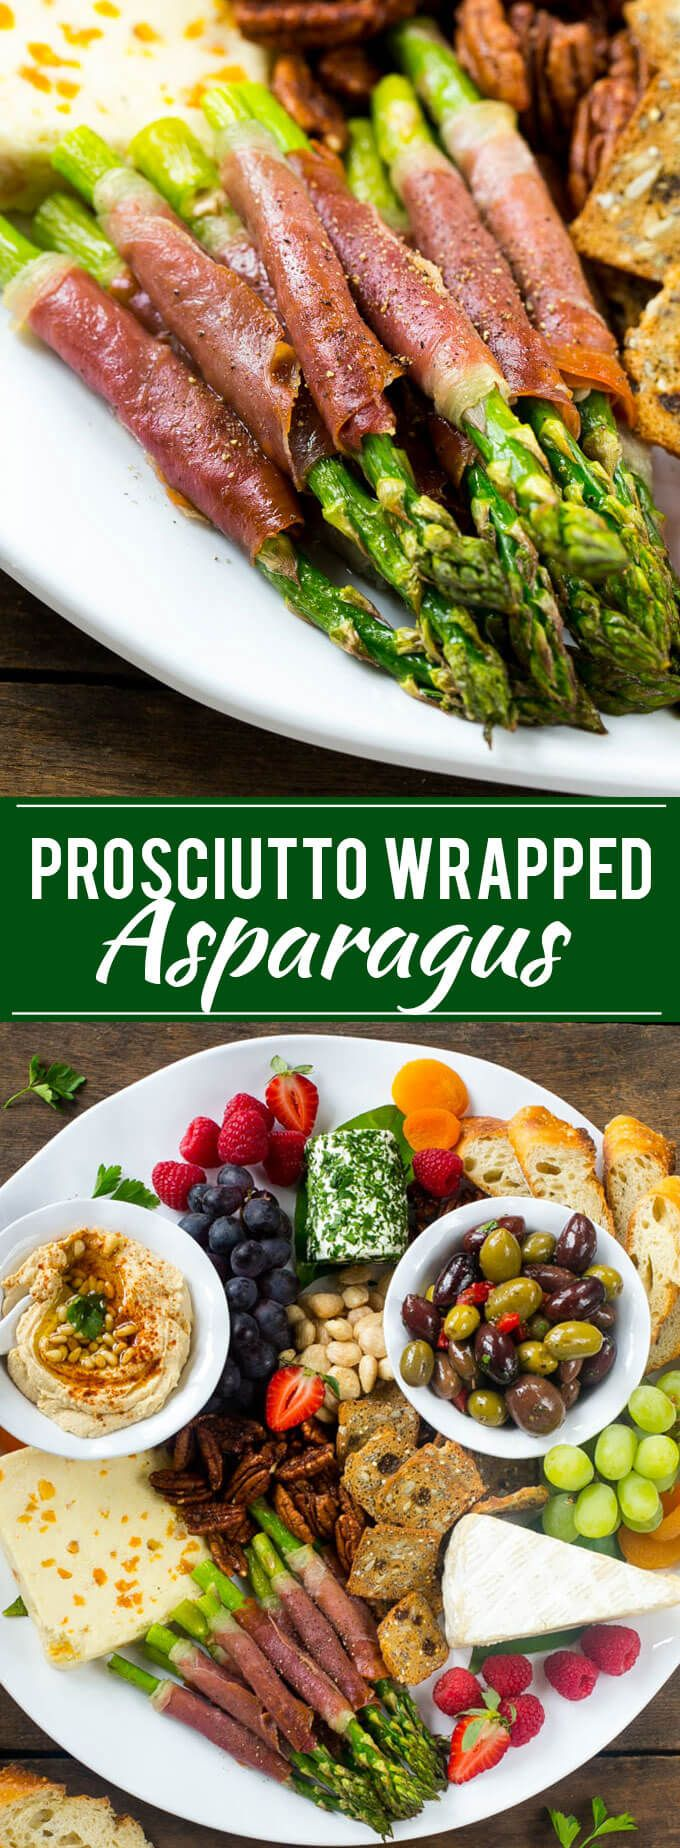 This prosciutto wrapped asparagus is an easy 15 minute appetizer with just 4 ingredients! Plus enter to win a 12 piece dinnerware set! @qsquarednyc #qsquarednyc #ad